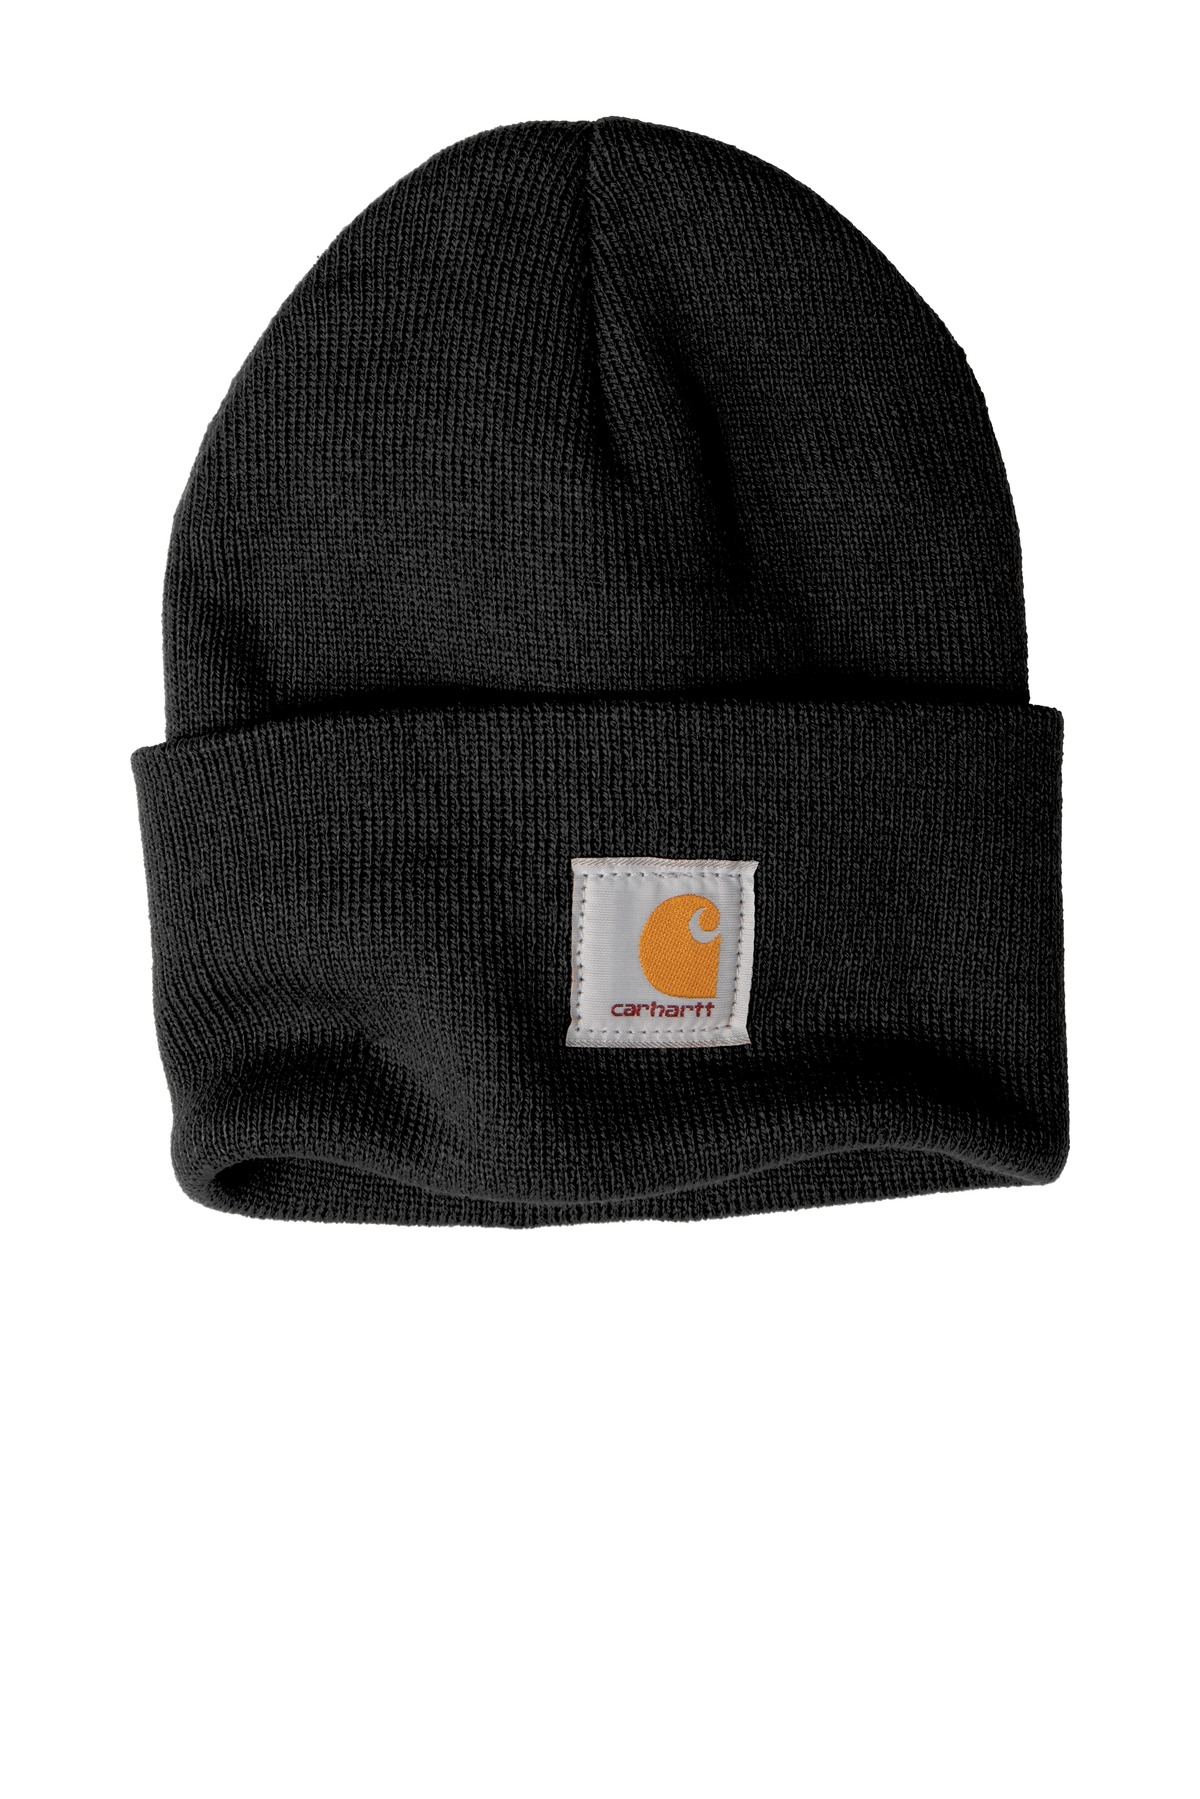 Carhartt  ®  Acrylic Watch Hat. CTA18 - Black